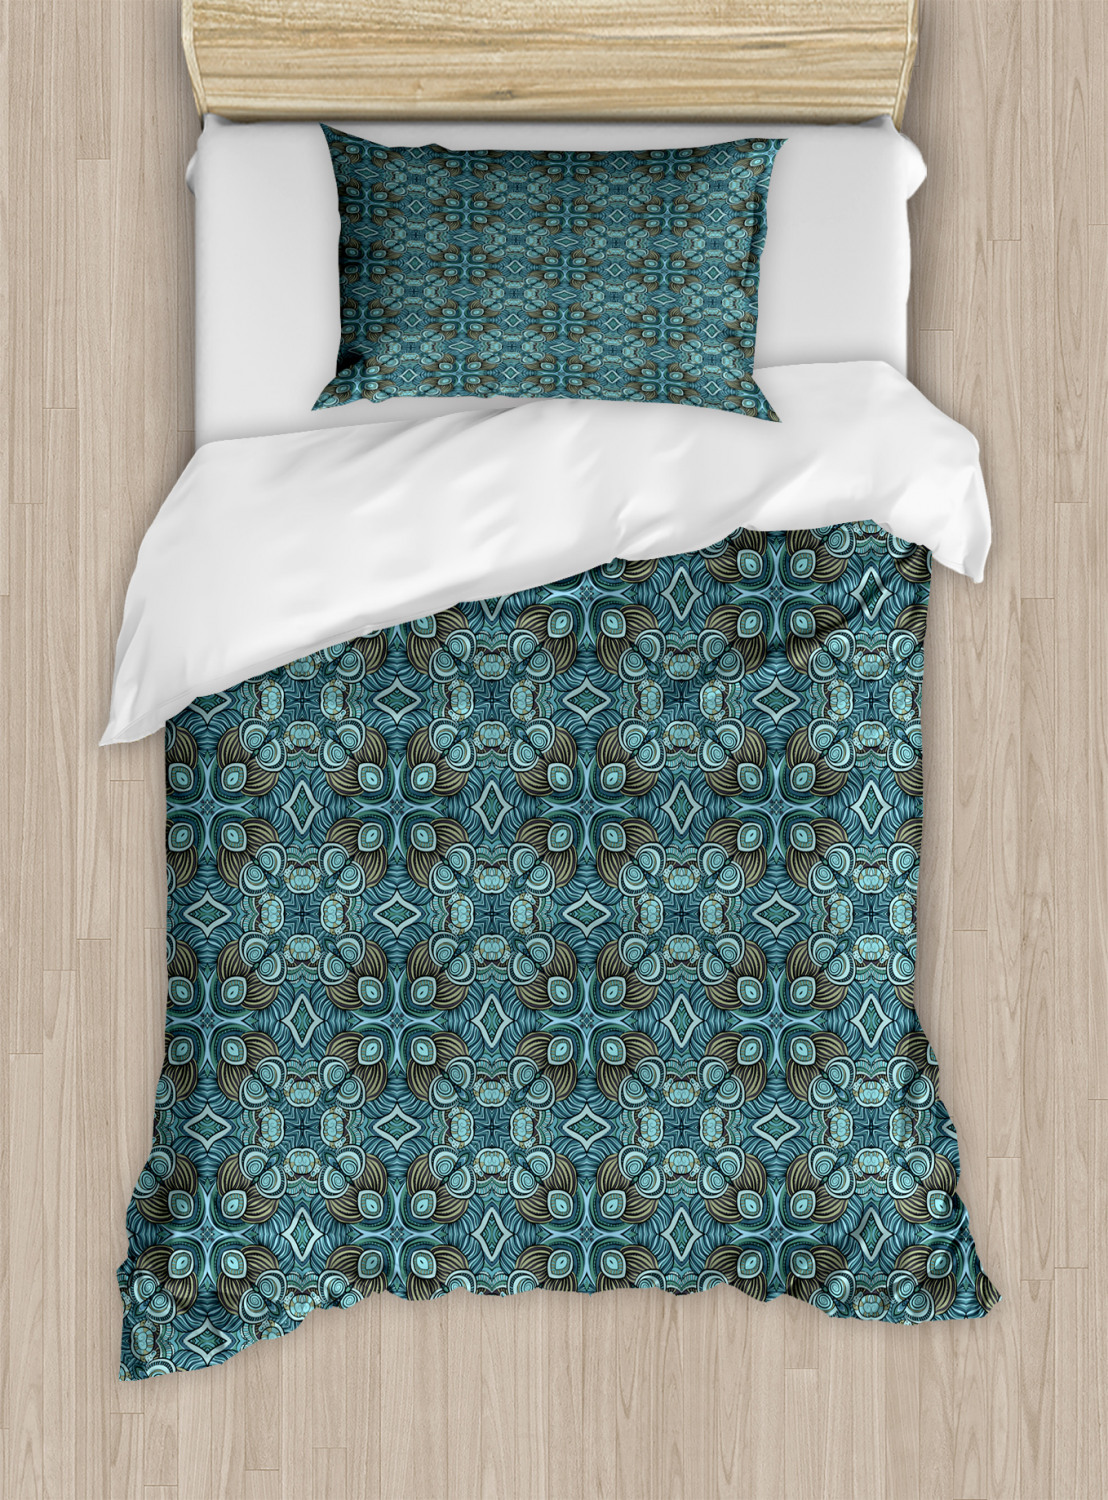 Timeless-Oriental-Duvet-Cover-Set-Twin-Queen-King-Sizes-with-Pillow-Shams thumbnail 28